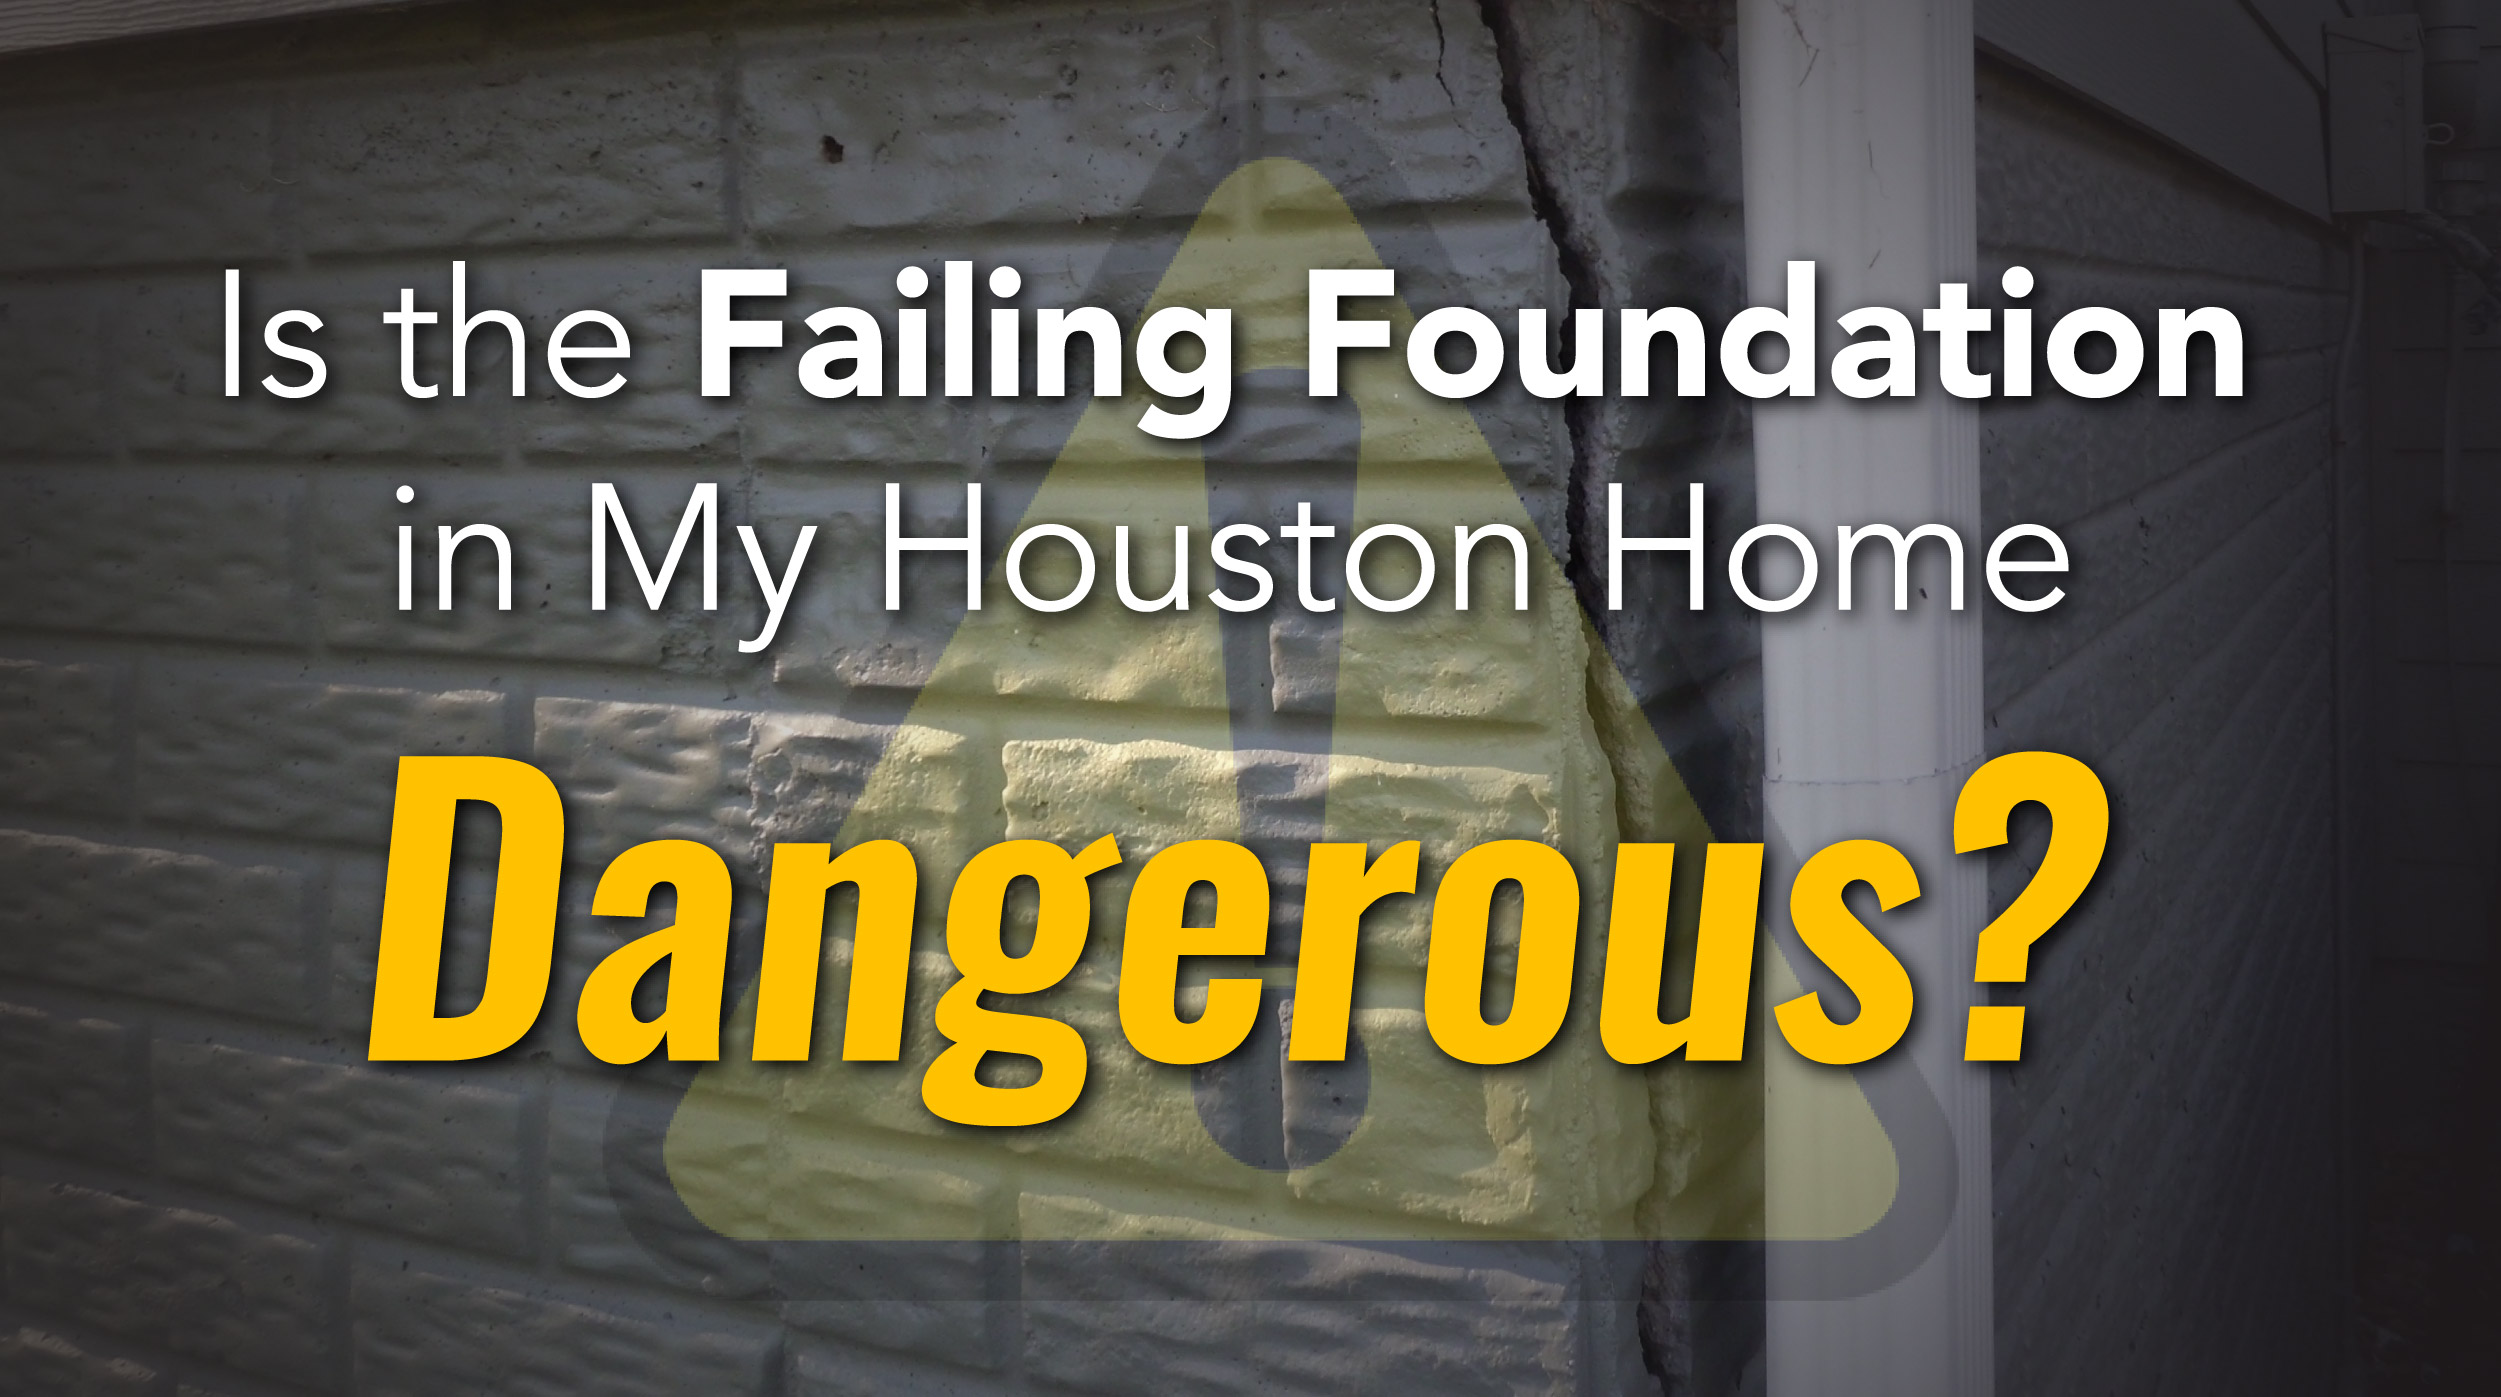 Is My Failing Foundation Dangerous?